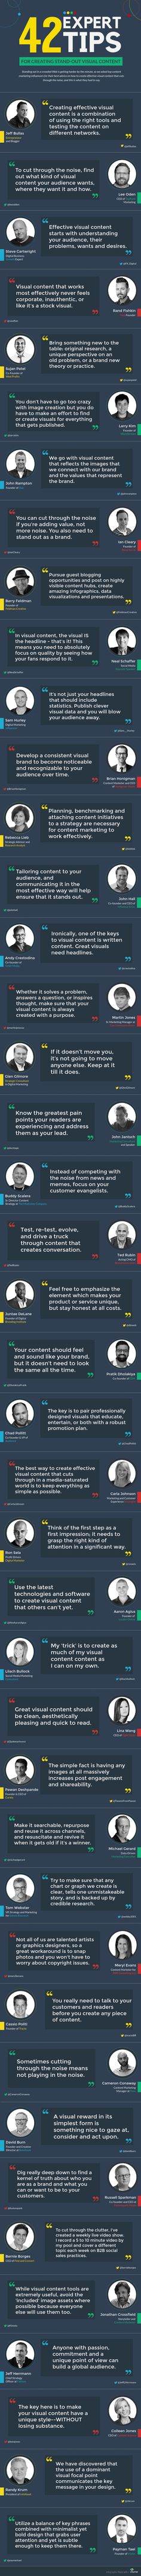 42 Experts Tips for Creating Stand-Out Visual Content [E-Book & Infographic]